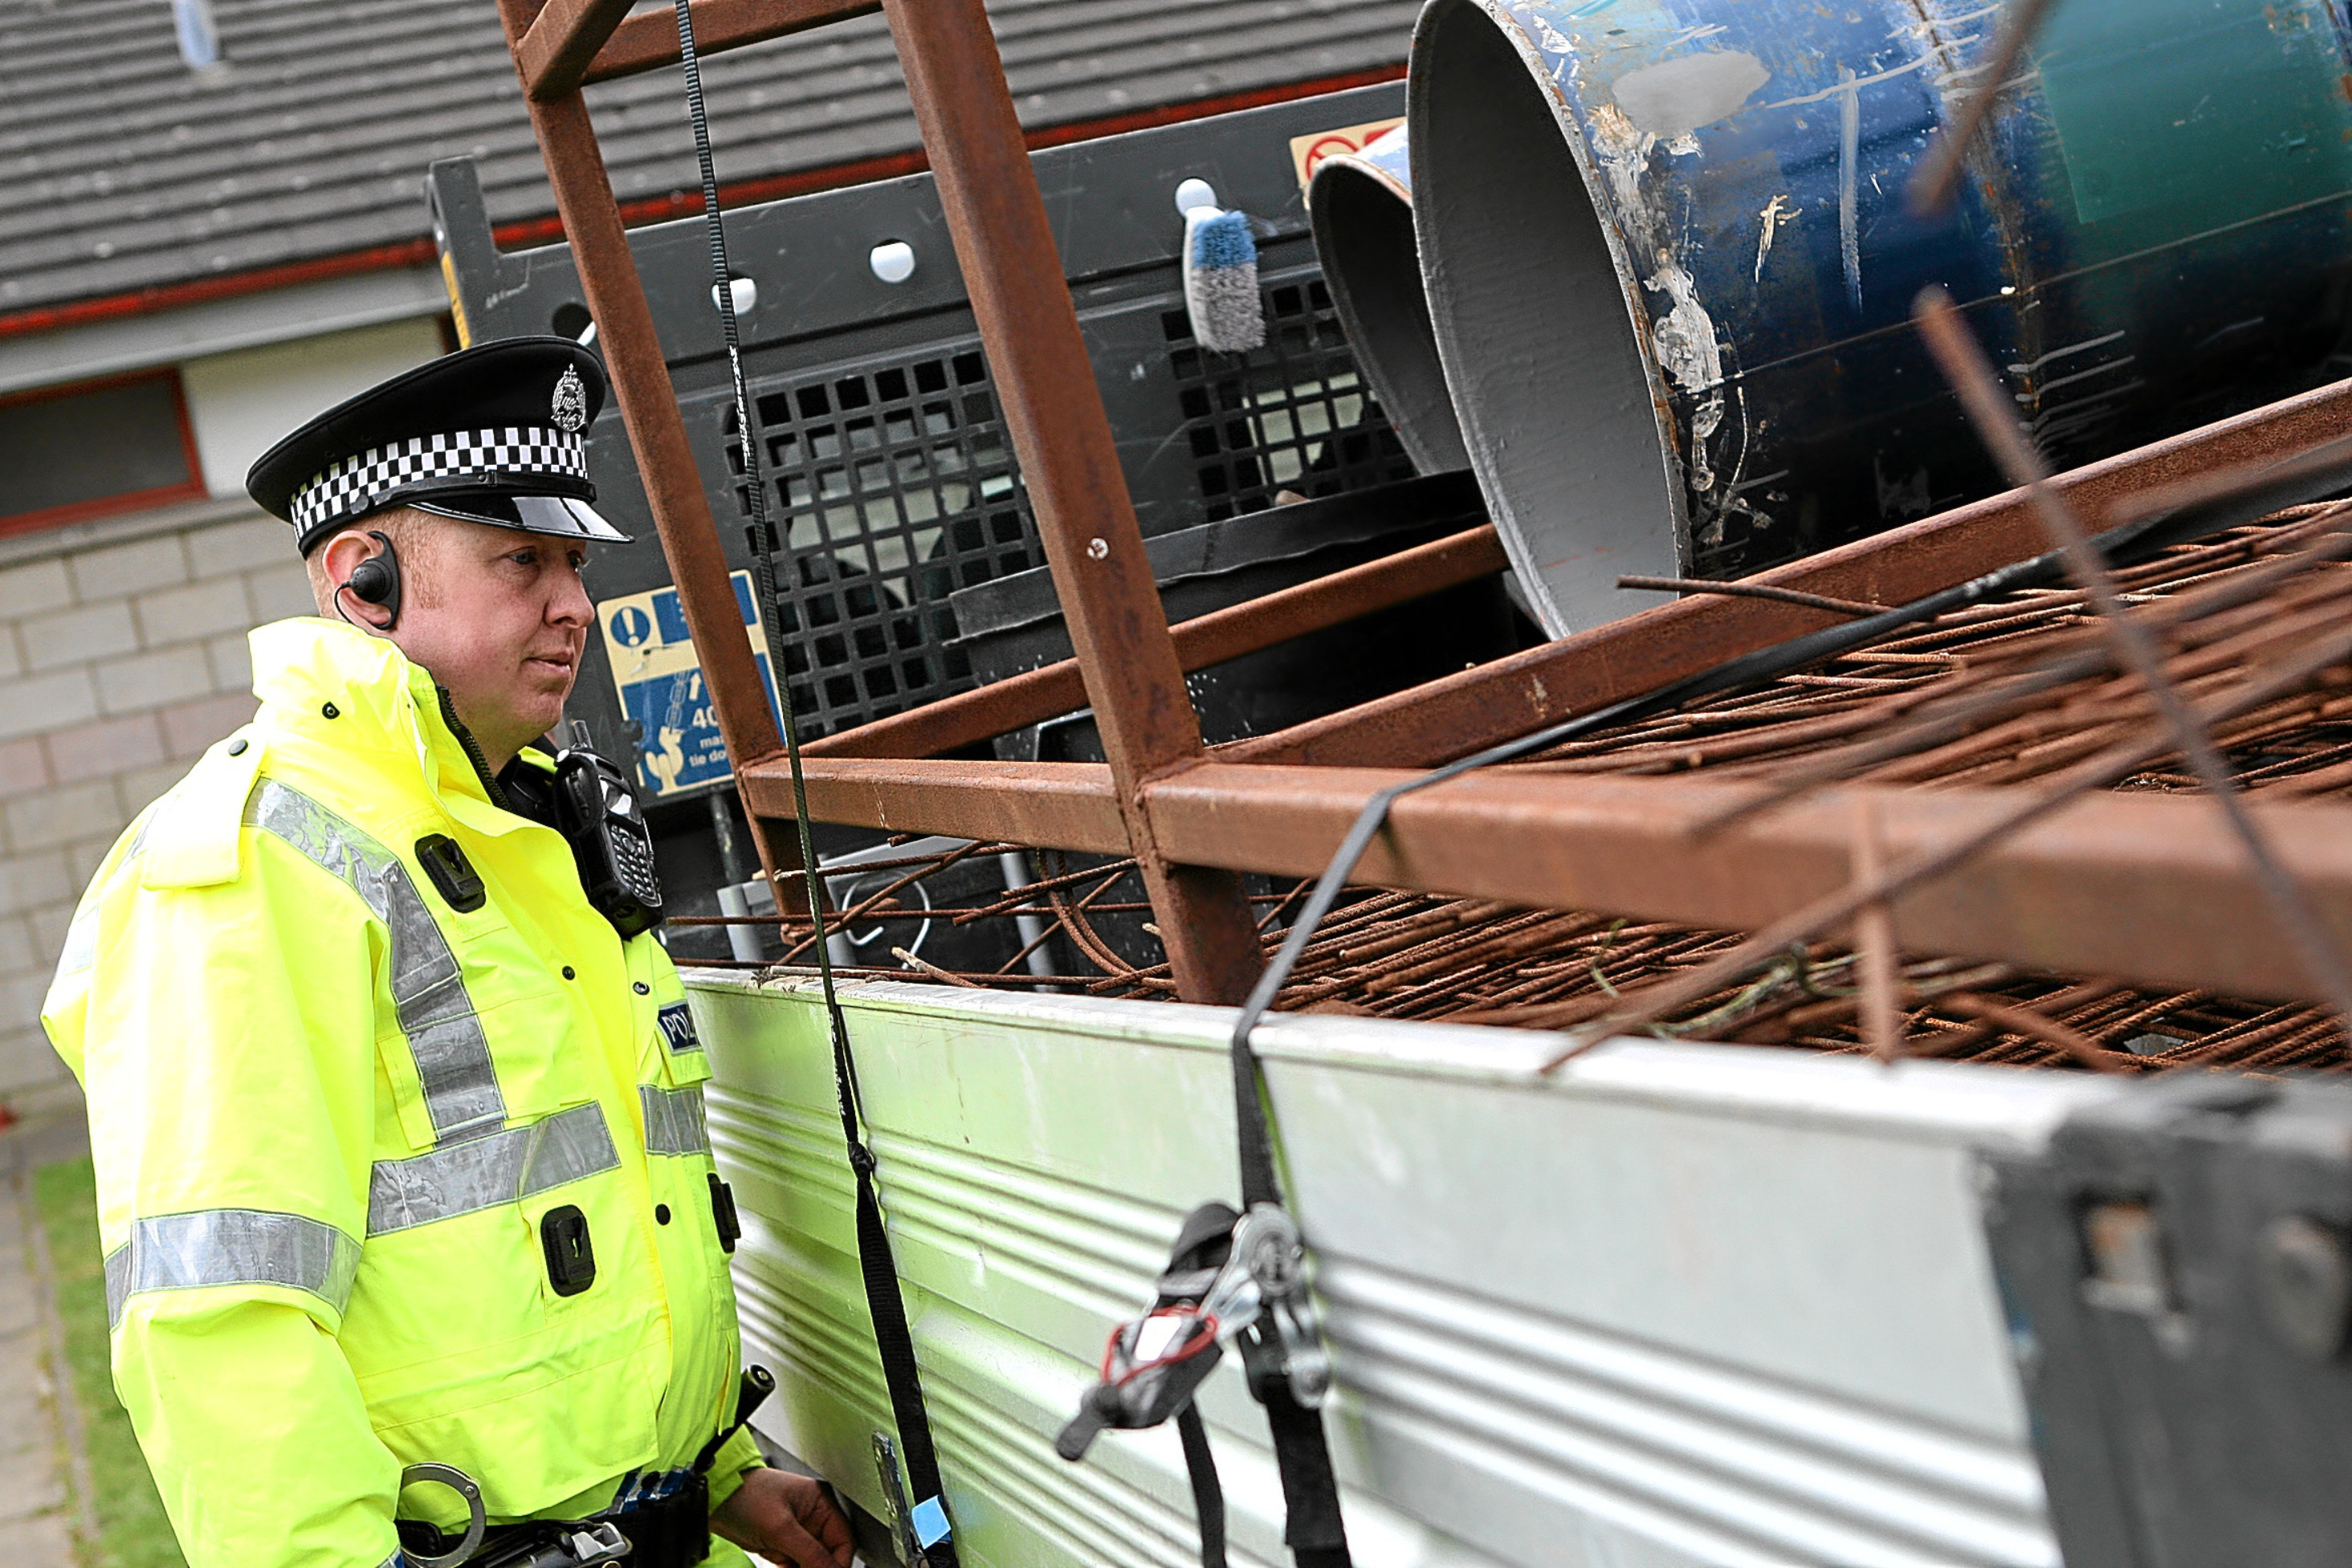 Police are clamping down on illegal scrap metal dealing.